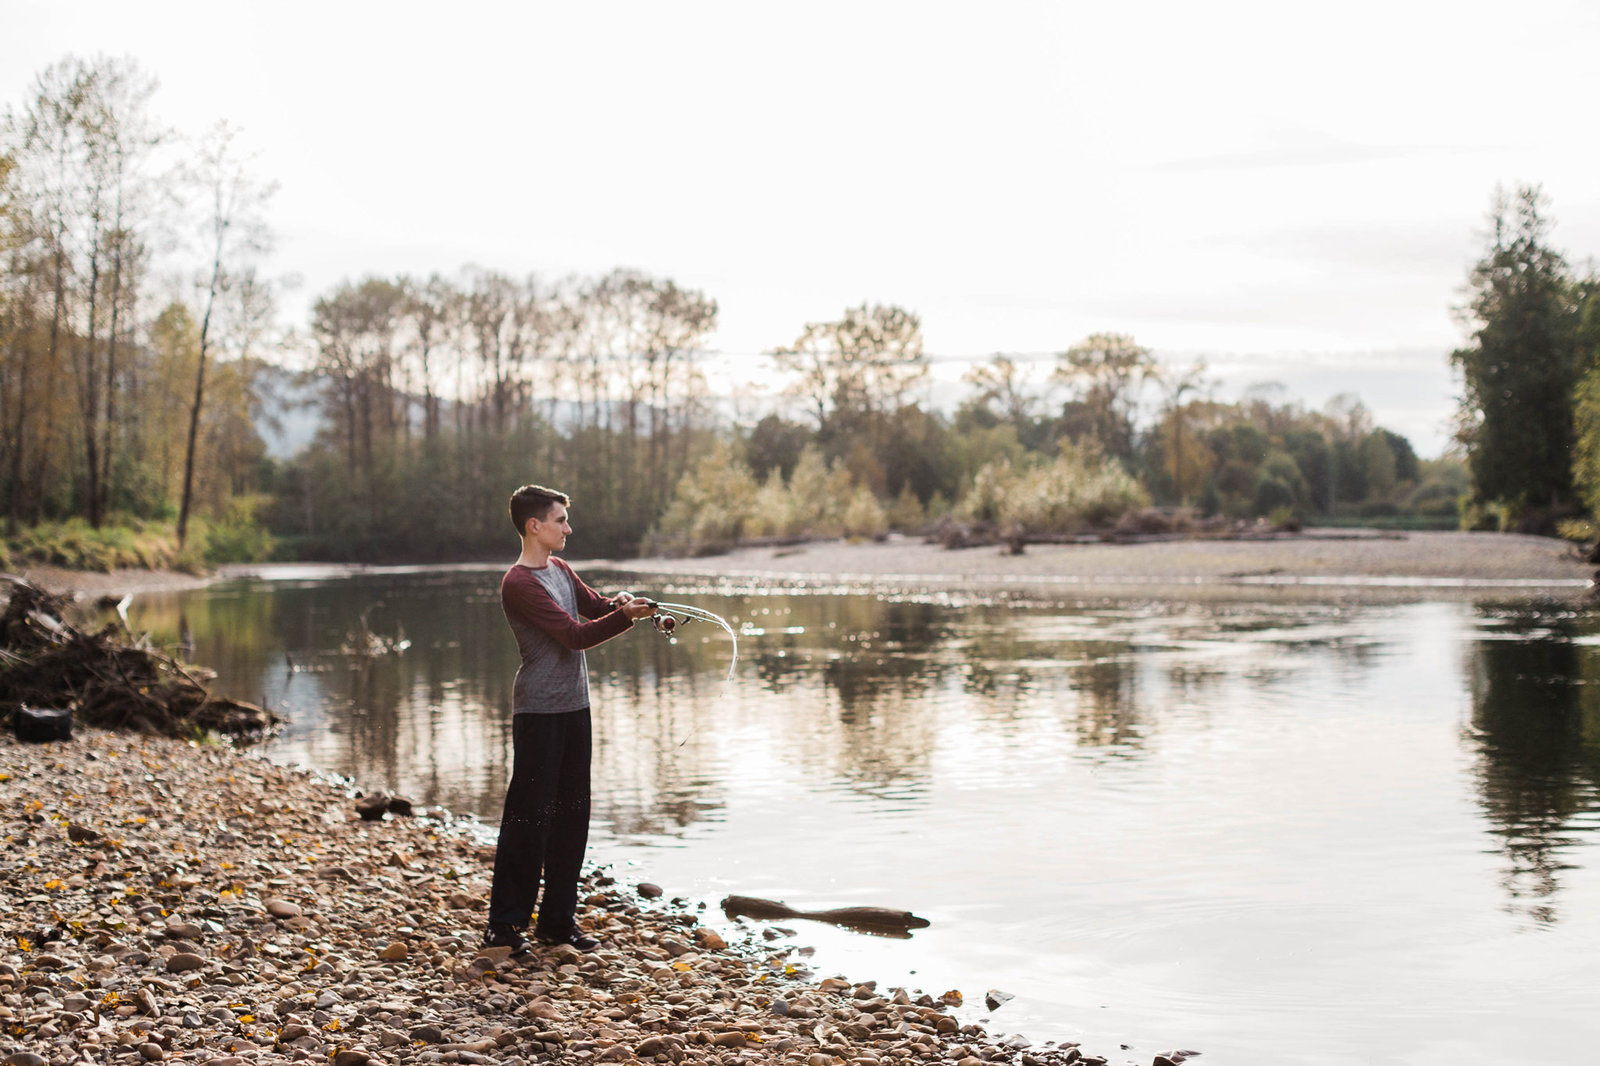 030-north-bend-senior-photos-derek-fishing-amy-galbraith